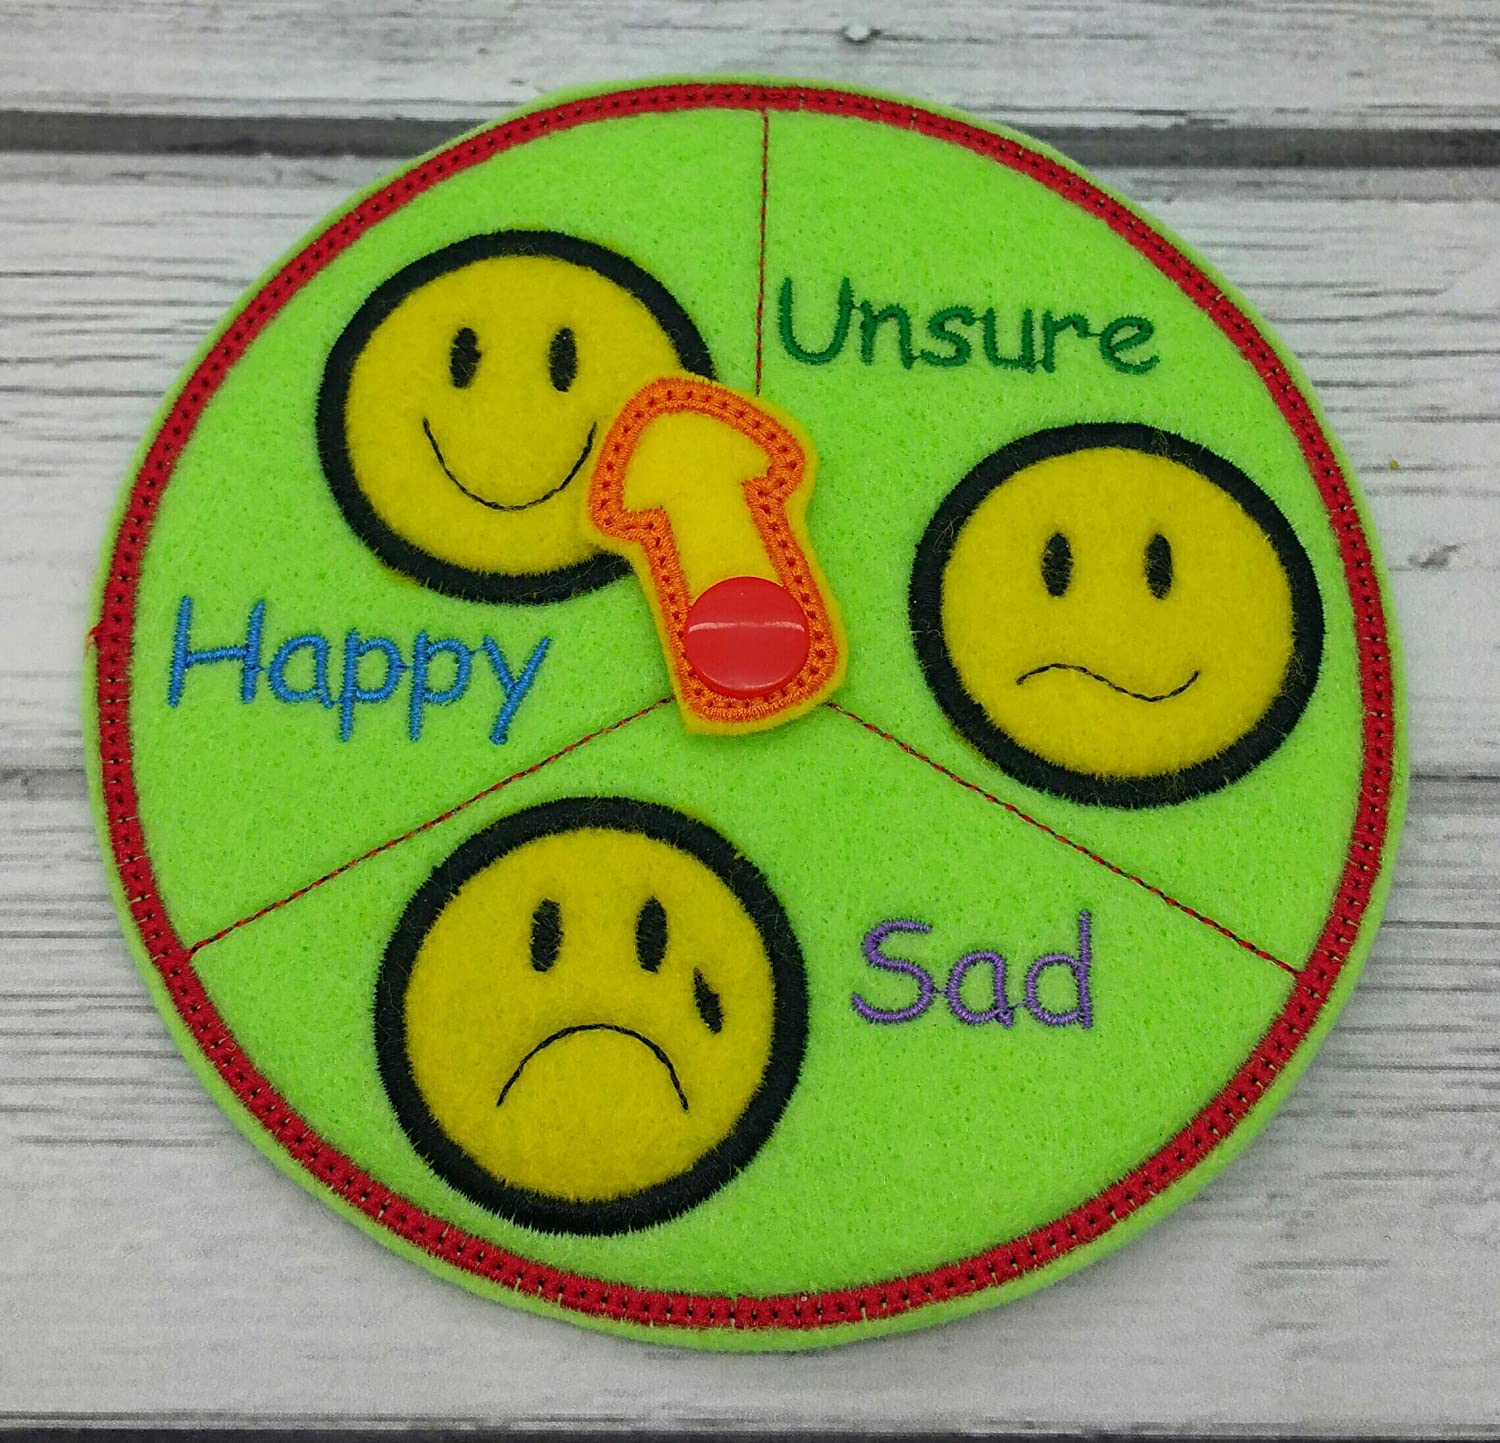 Feeling Emotions Chart For Kids With 3 Faces Self Expression Educational Learning Autism Toys